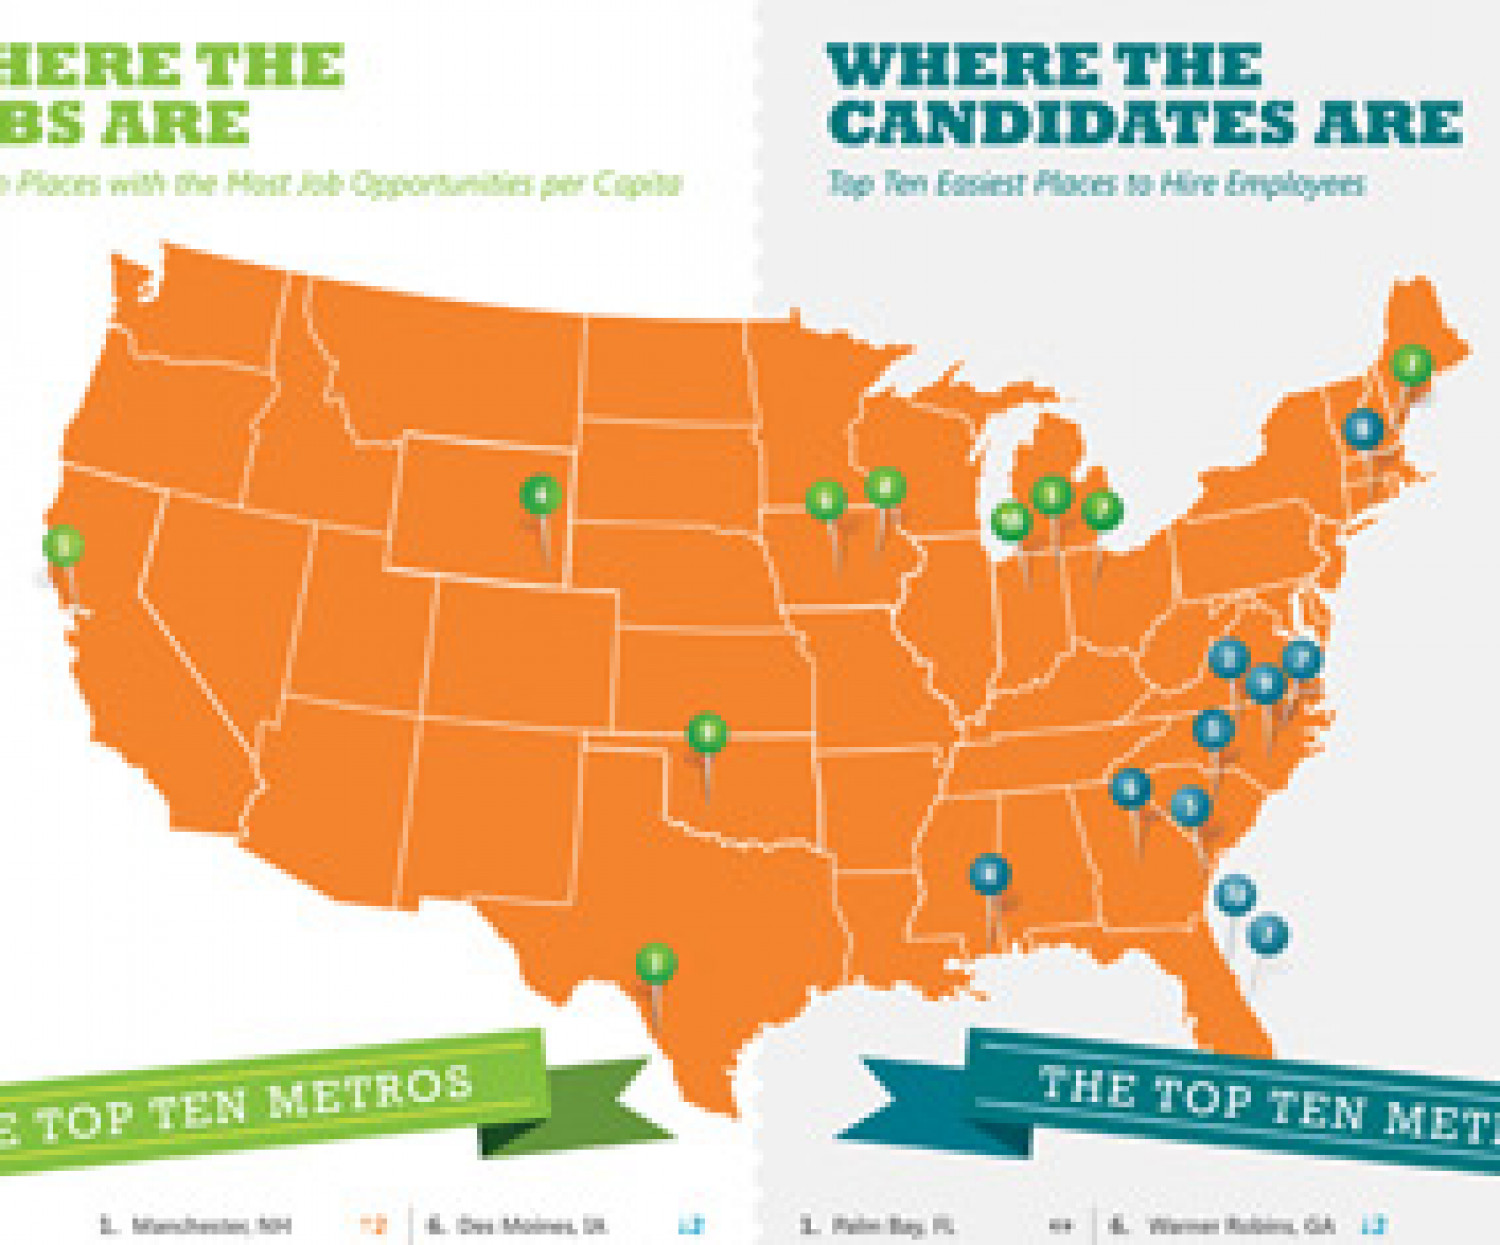 The Top 50 Places to Find A Job & The 50 Easiest Places to Make A Hire Infographic